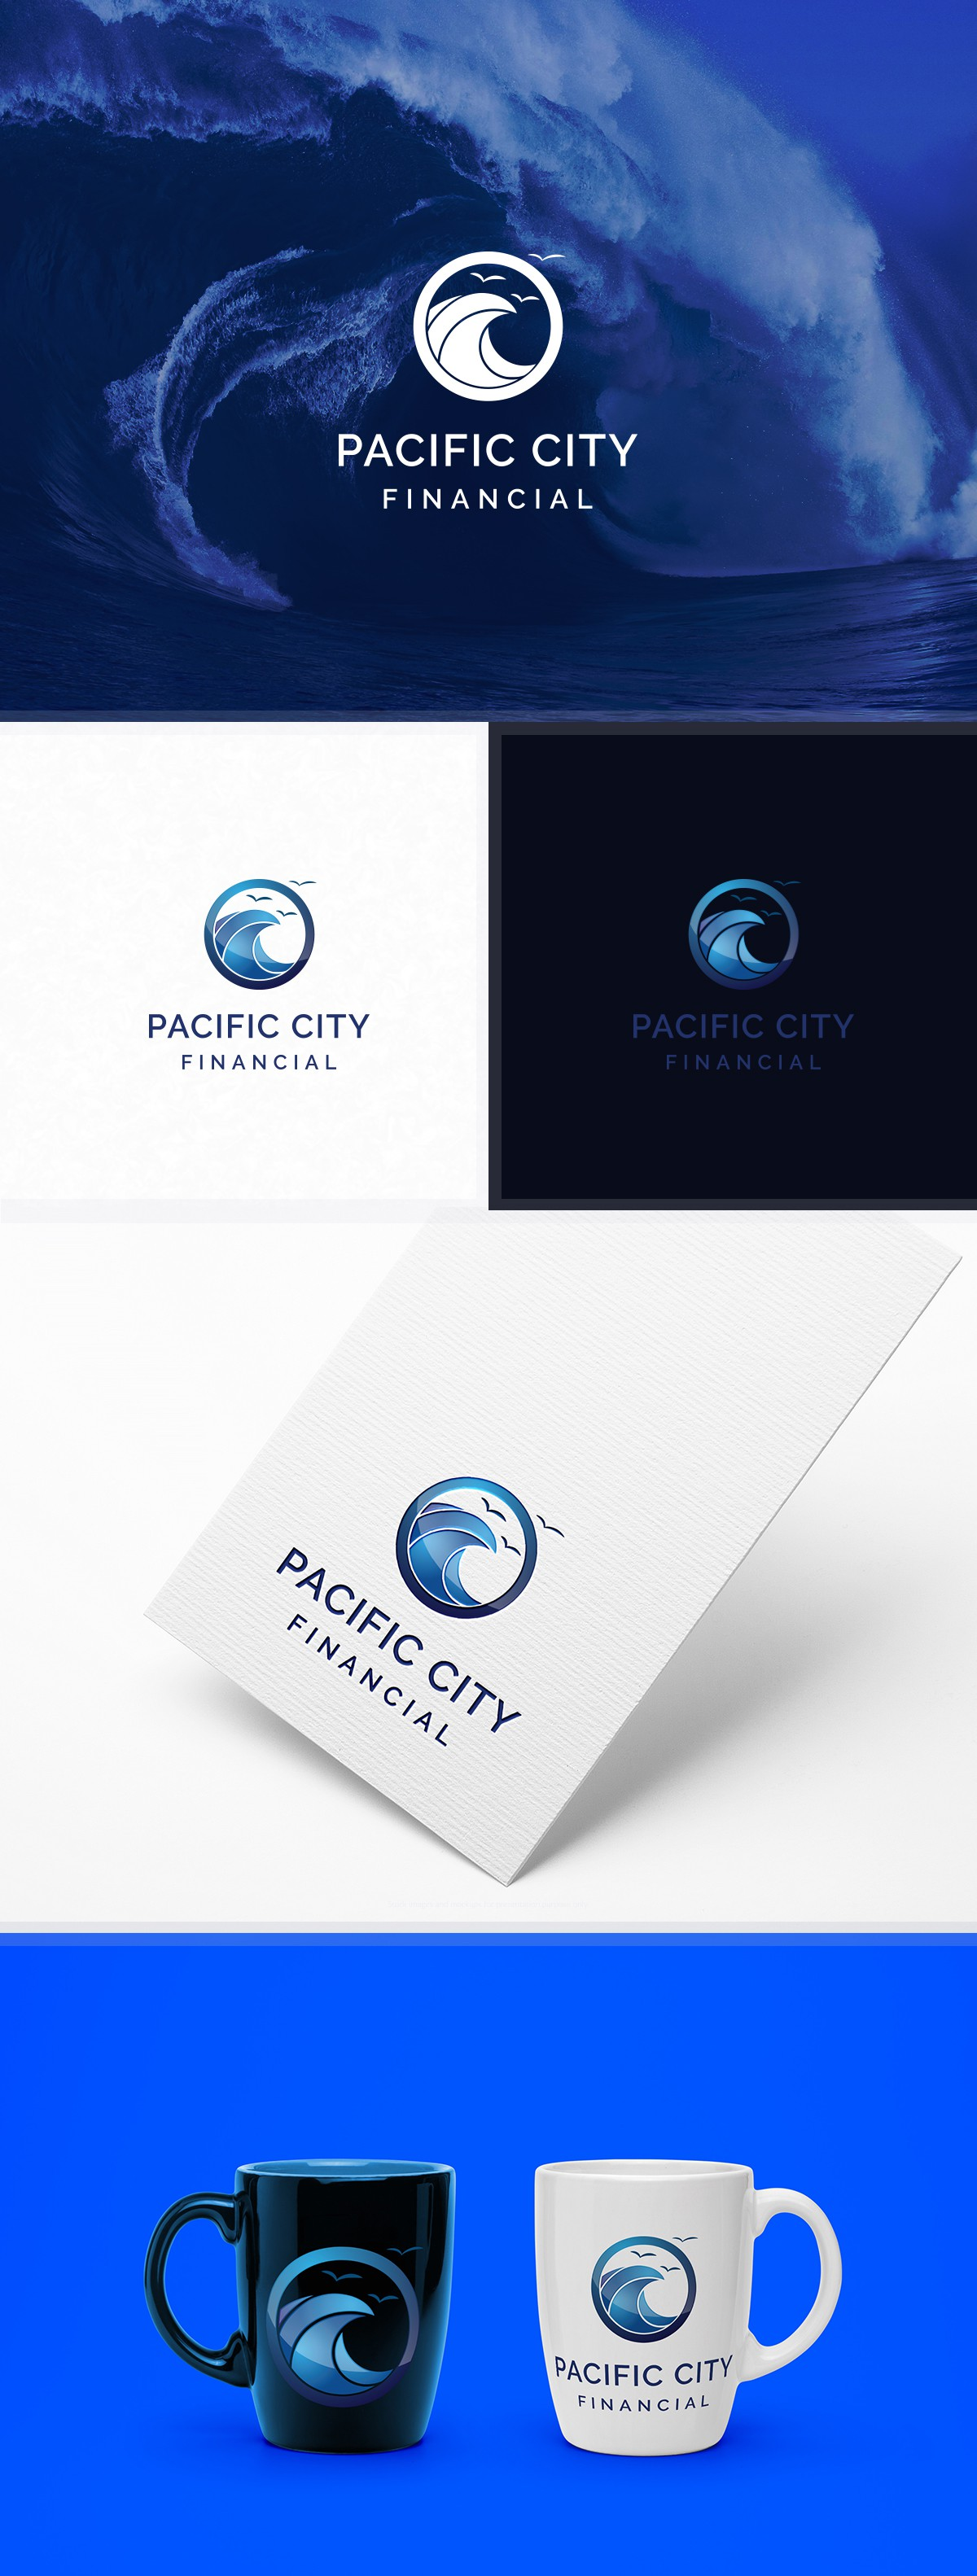 Design a wave logo for a new mortgage company